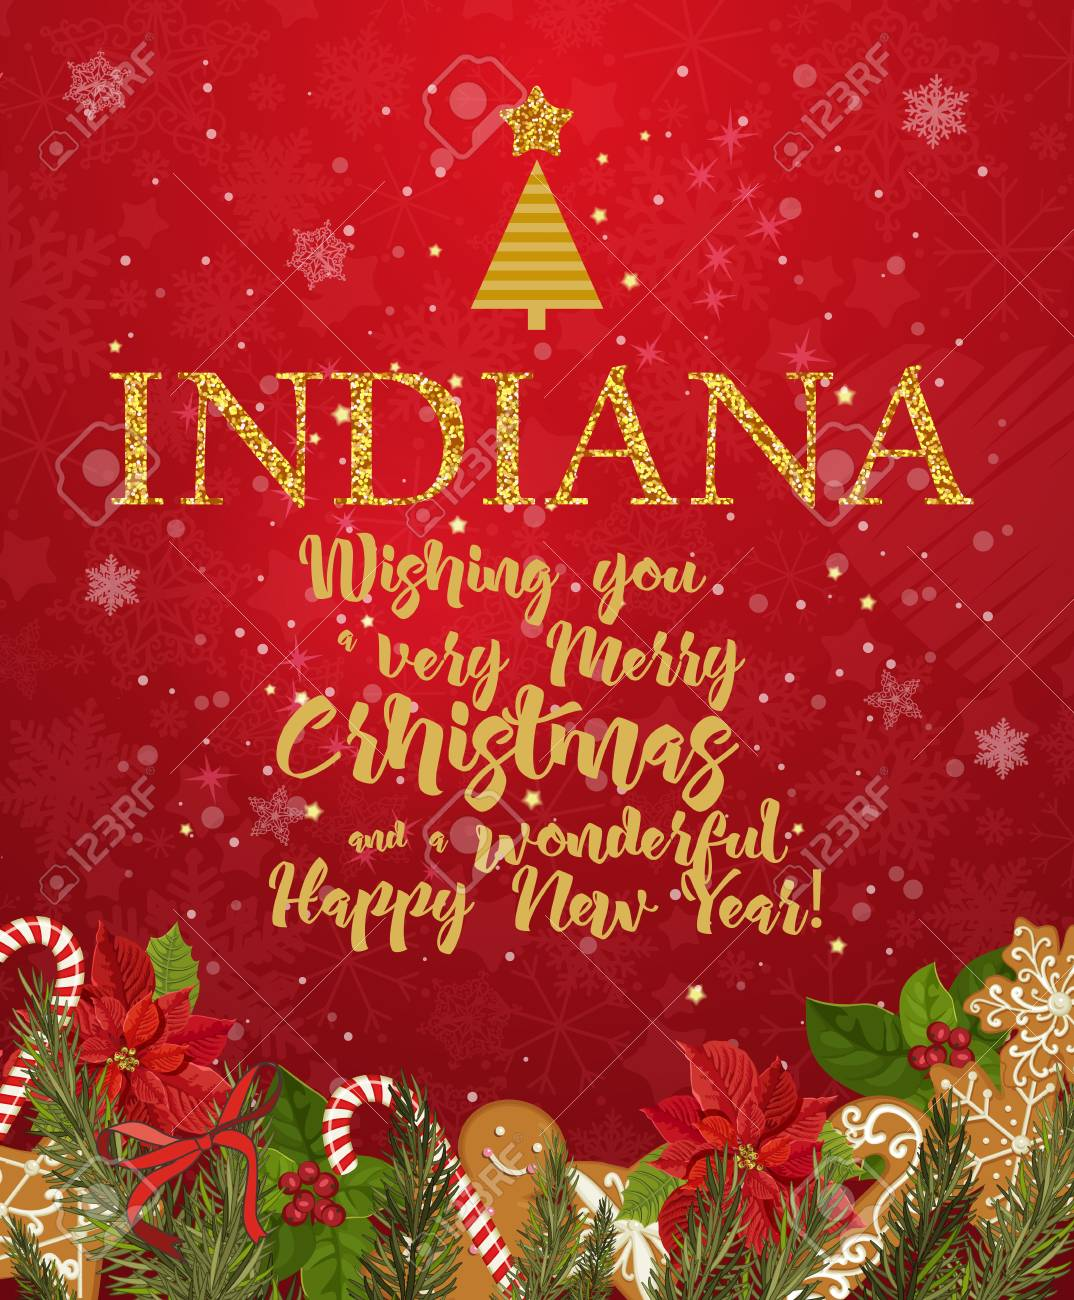 Christmas In Indiana.Indiana Merry Christmas And A Happy New Year Greeting Vector